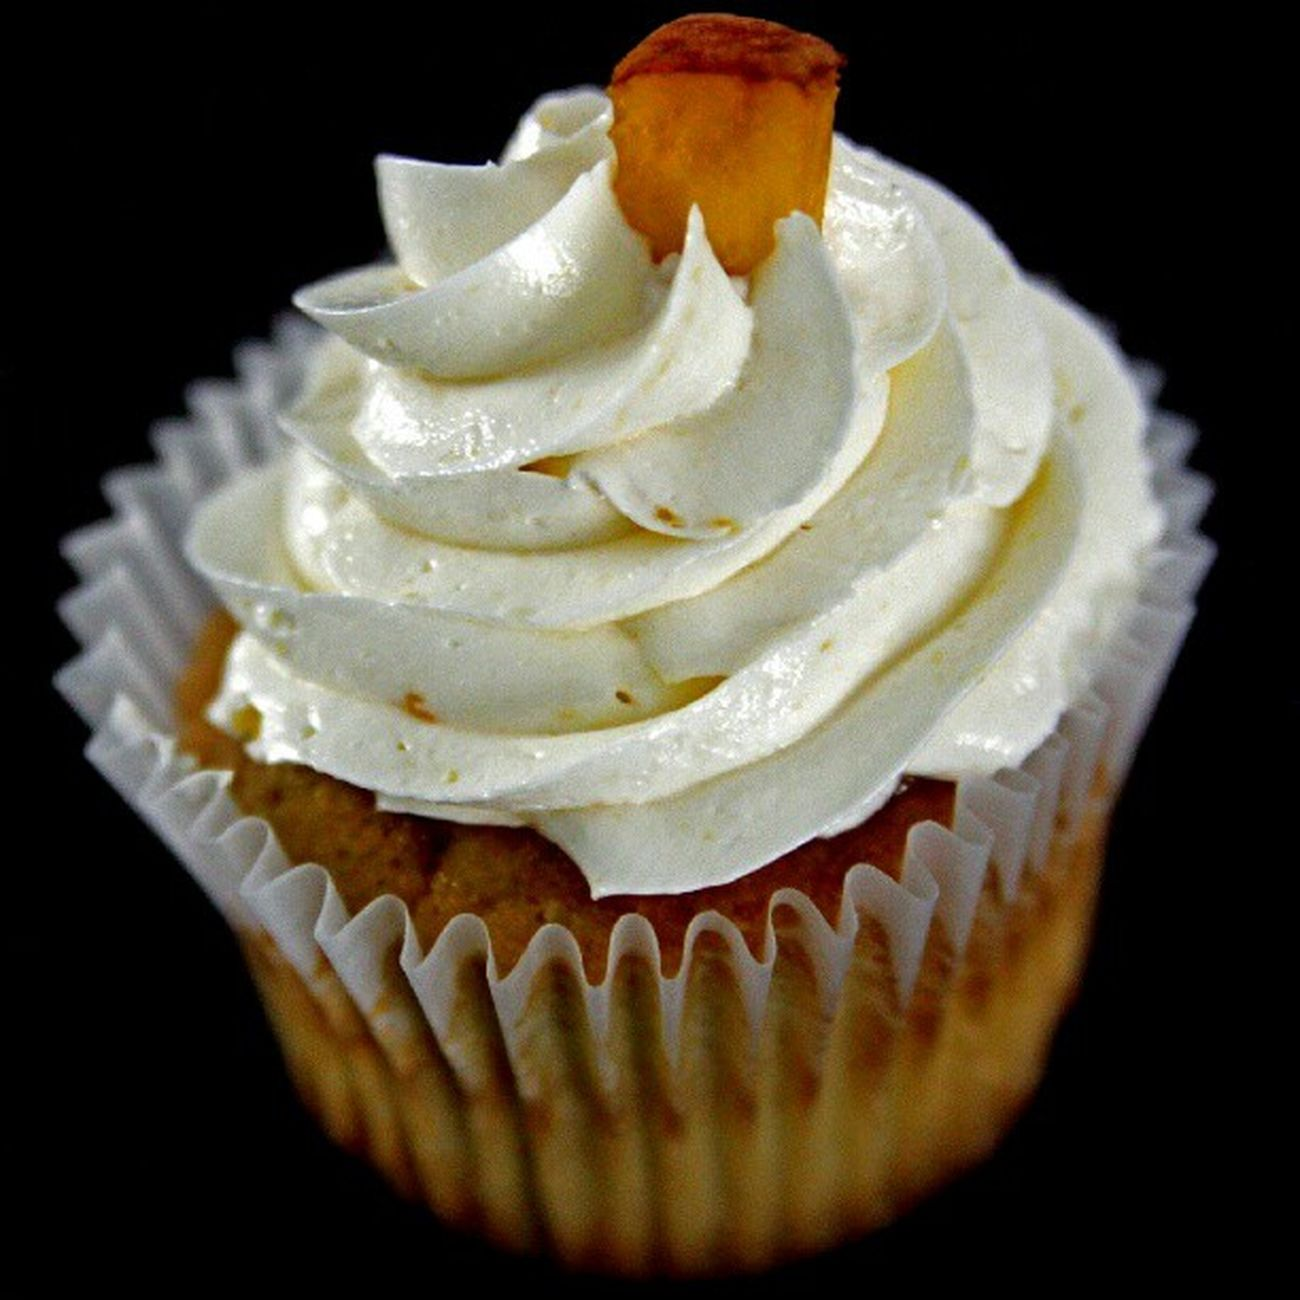 #sweet #Georgia #peach #cupcake Sweet Cupcake Georgia Peach